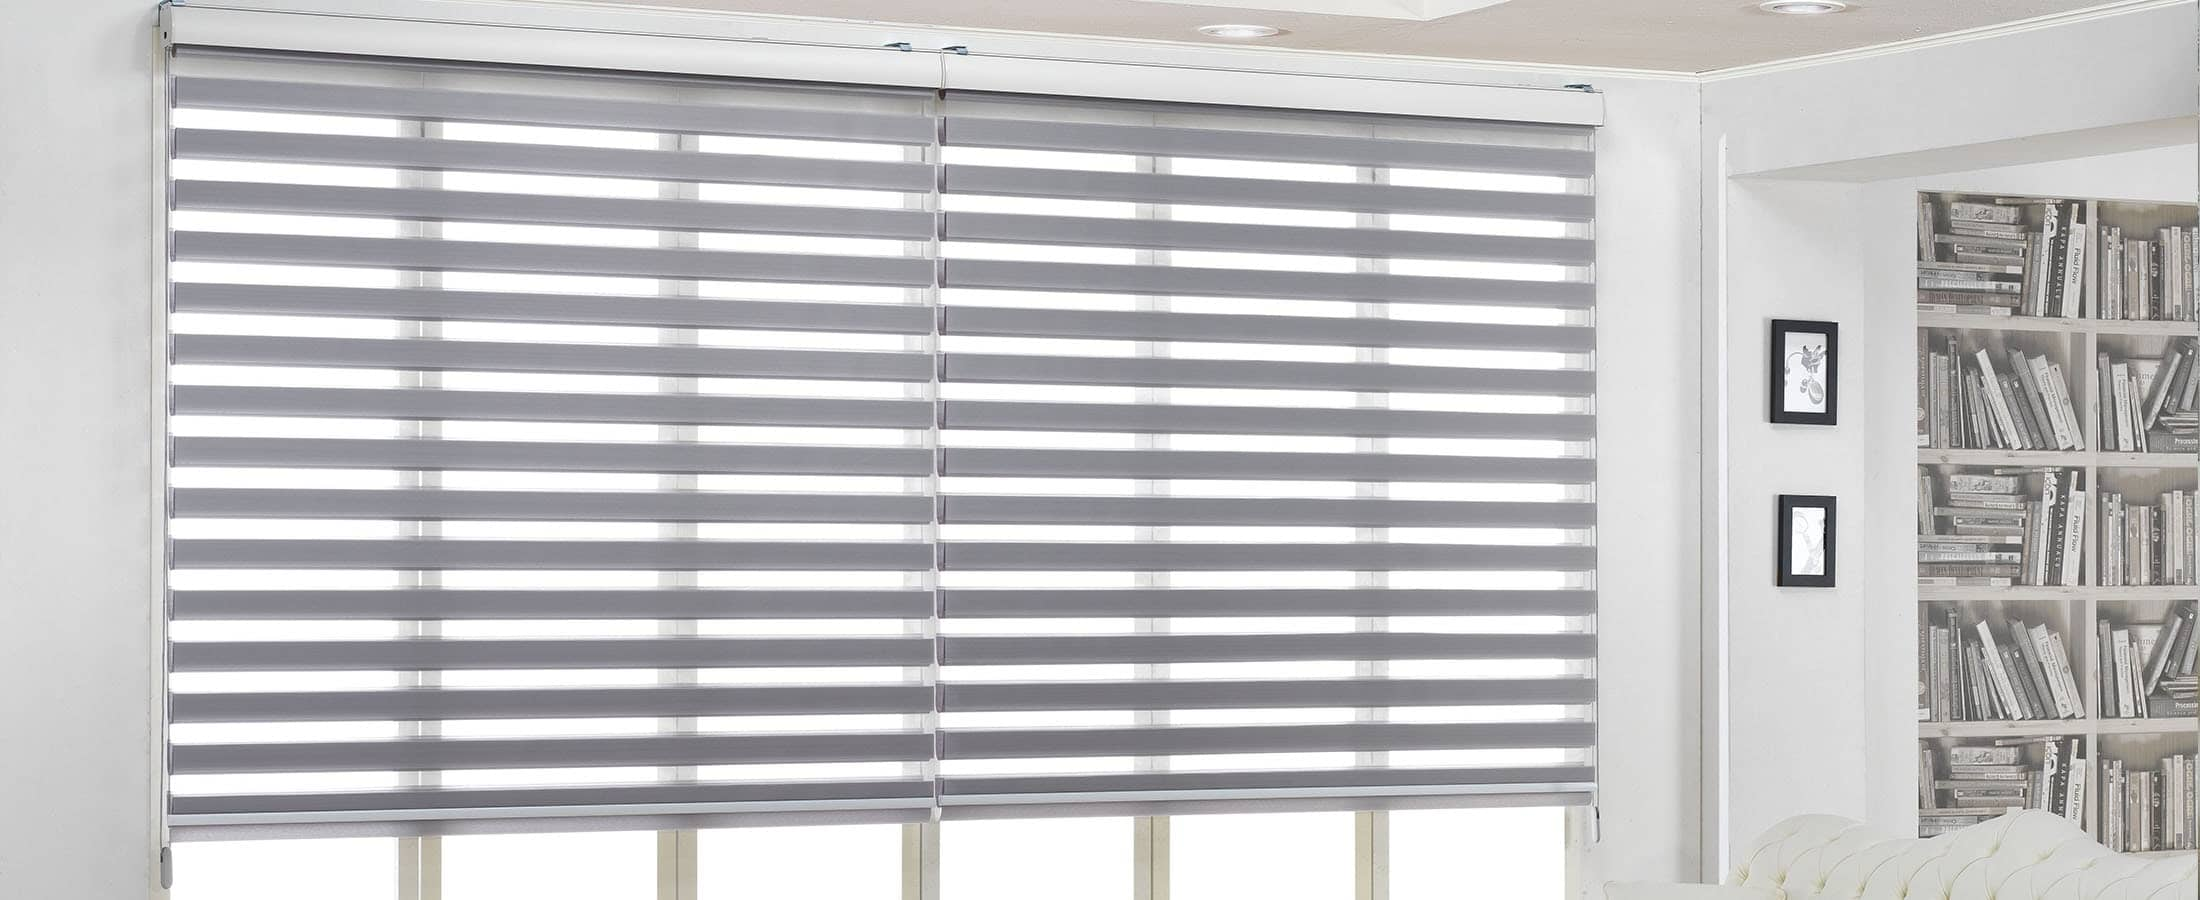 Tricoshade Blinds